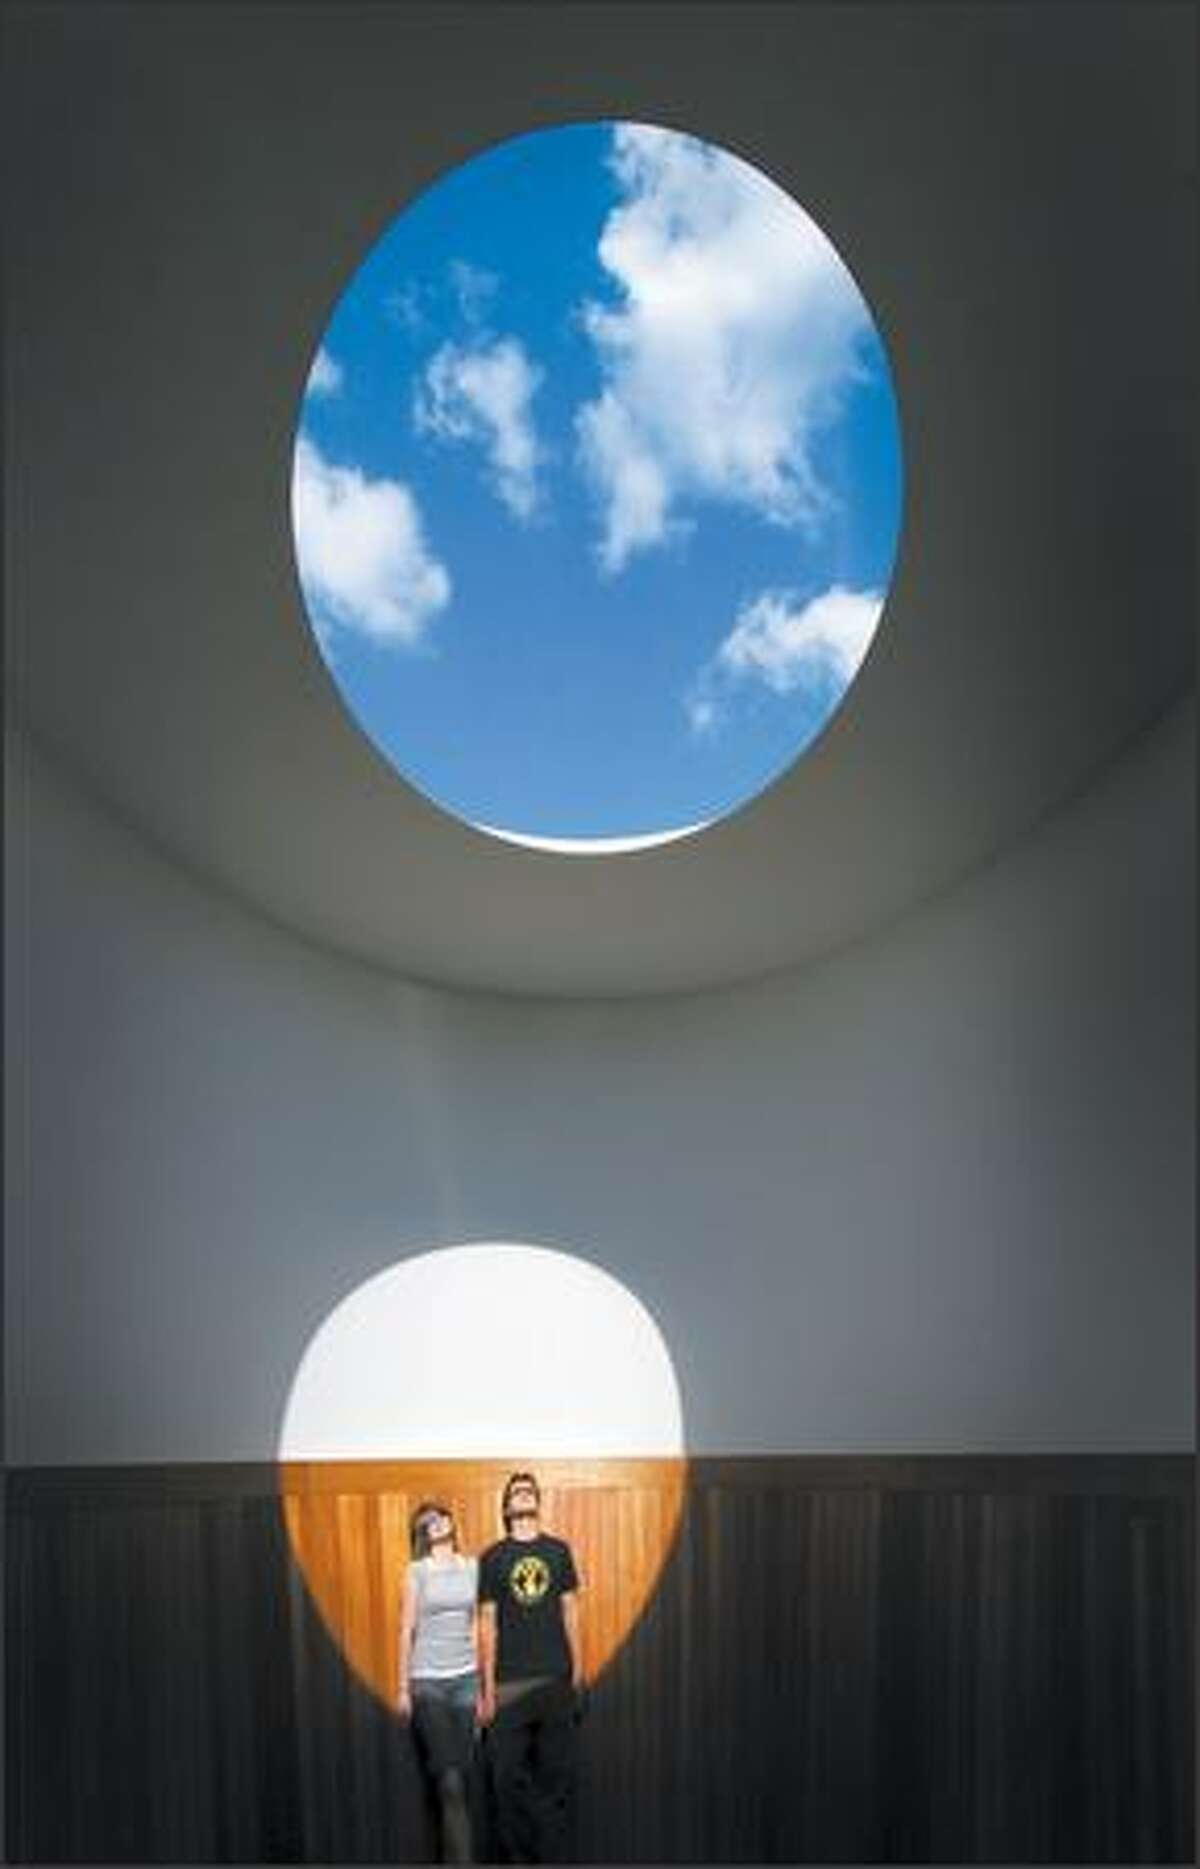 4:48 p.m. -- Molly Theobald and Jeremiah Schiffman of Seattle enjoy some intense solstice sun rays while viewing artist James Turrell's skyspace